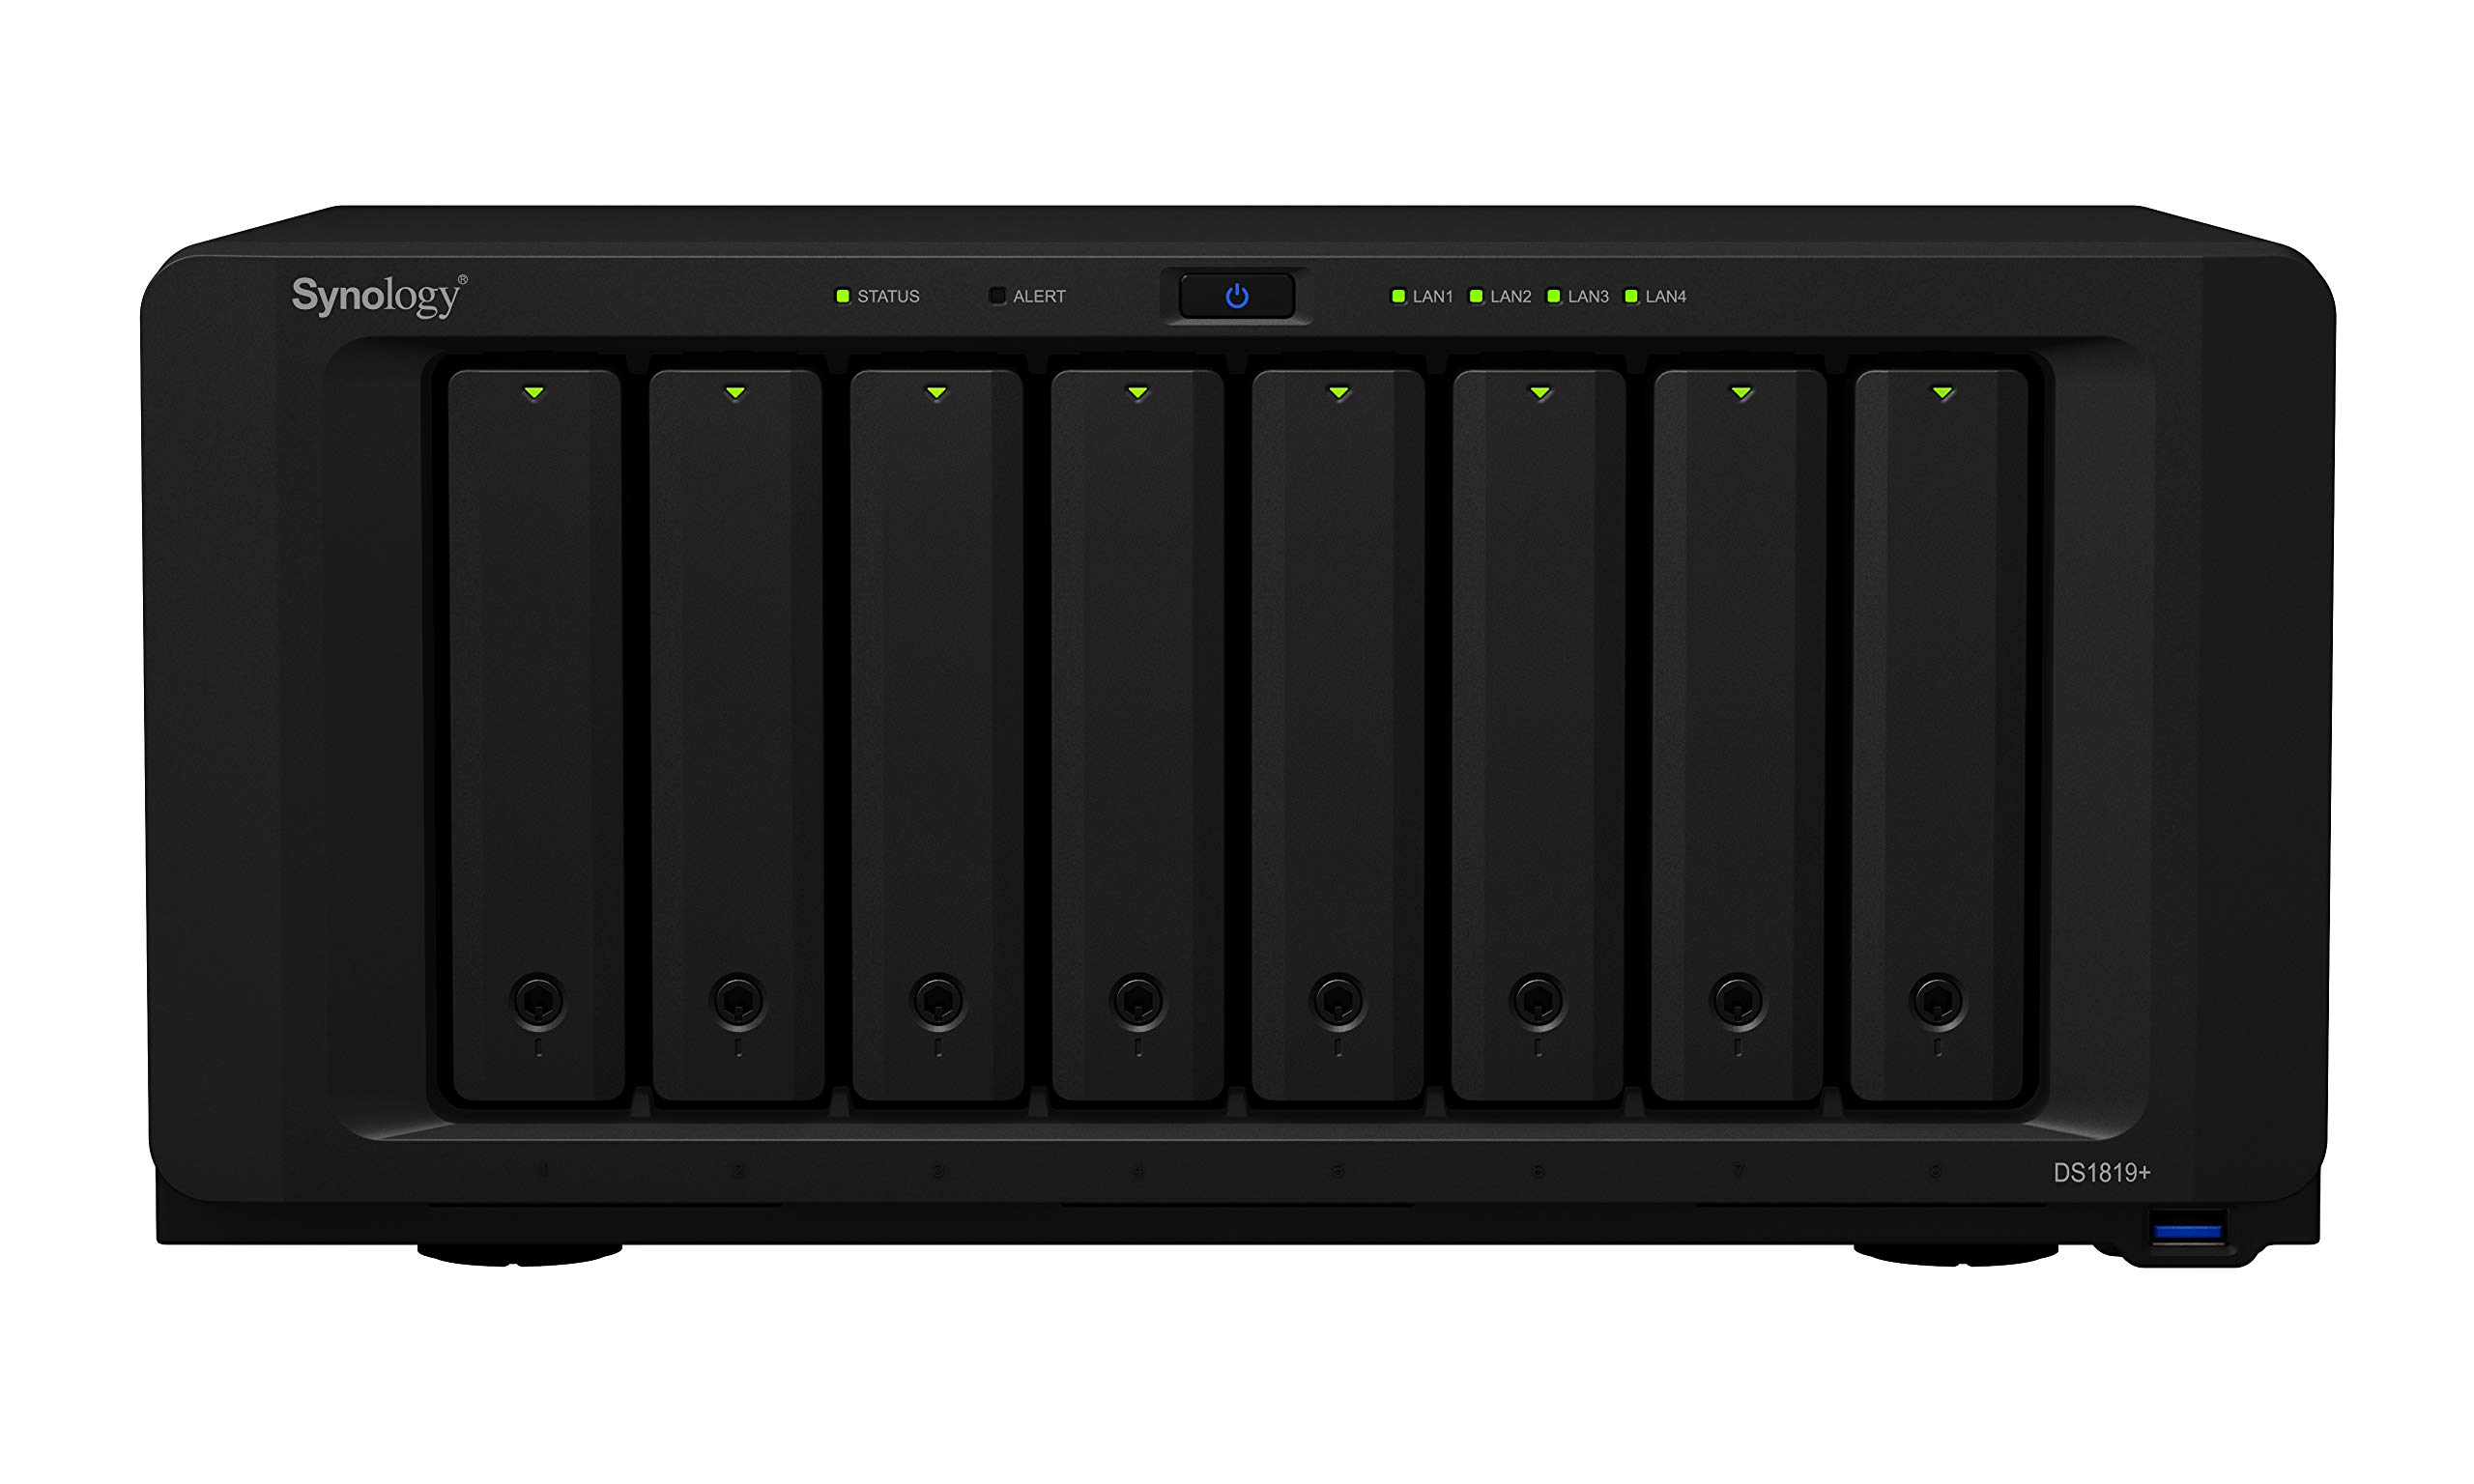 Synology 8 Bay NAS Diskstation (Diskless) (DS1819+) by Synology (Image #2)